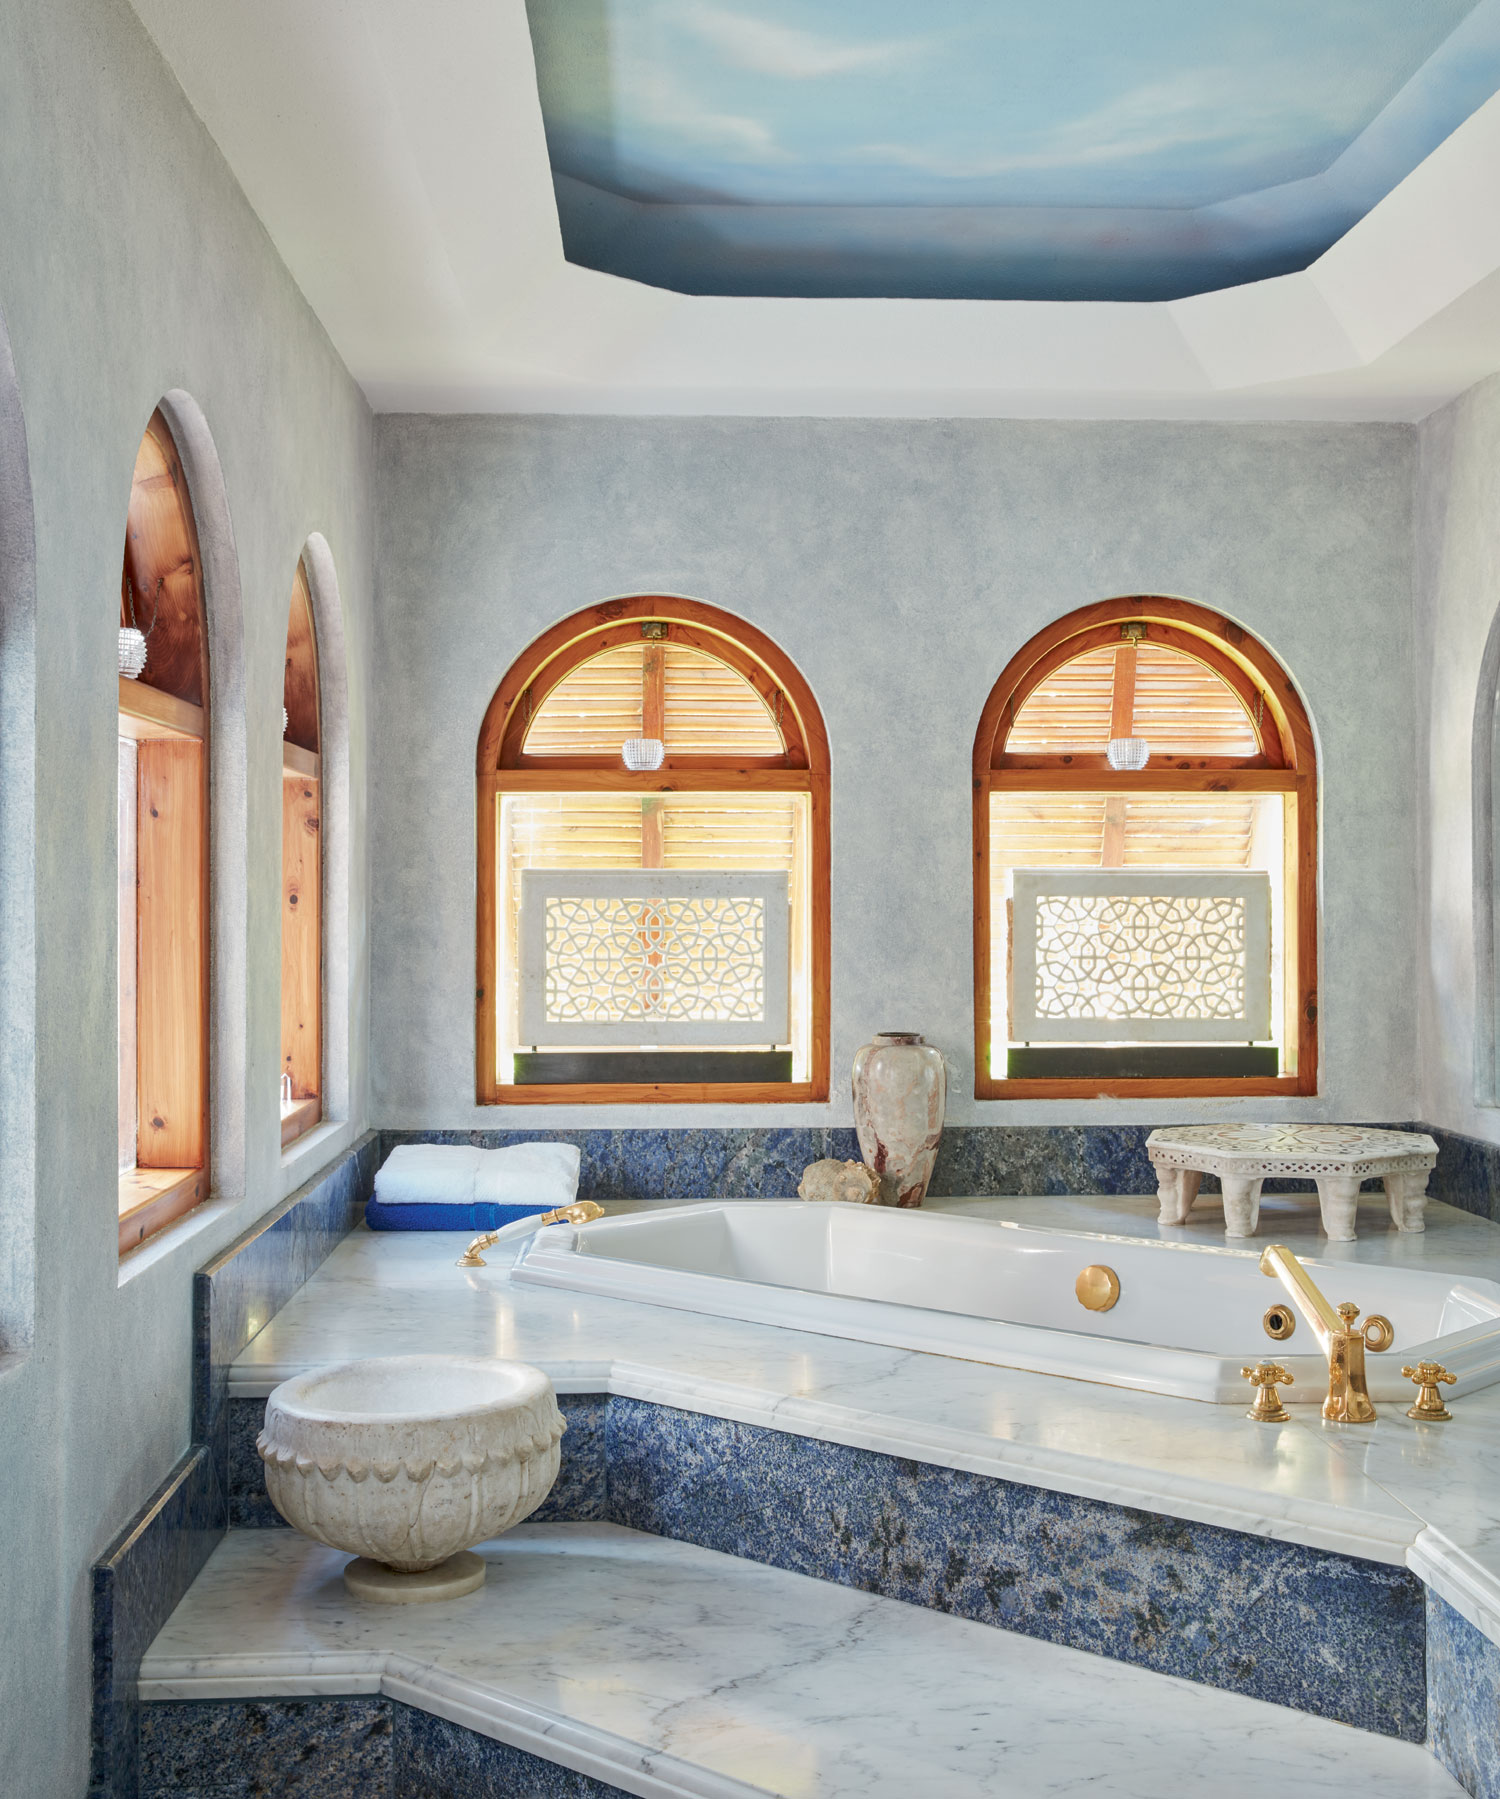 The master bedroom suite is a peaceful haven with its sumptuous spa bathroom in blue and white marble.